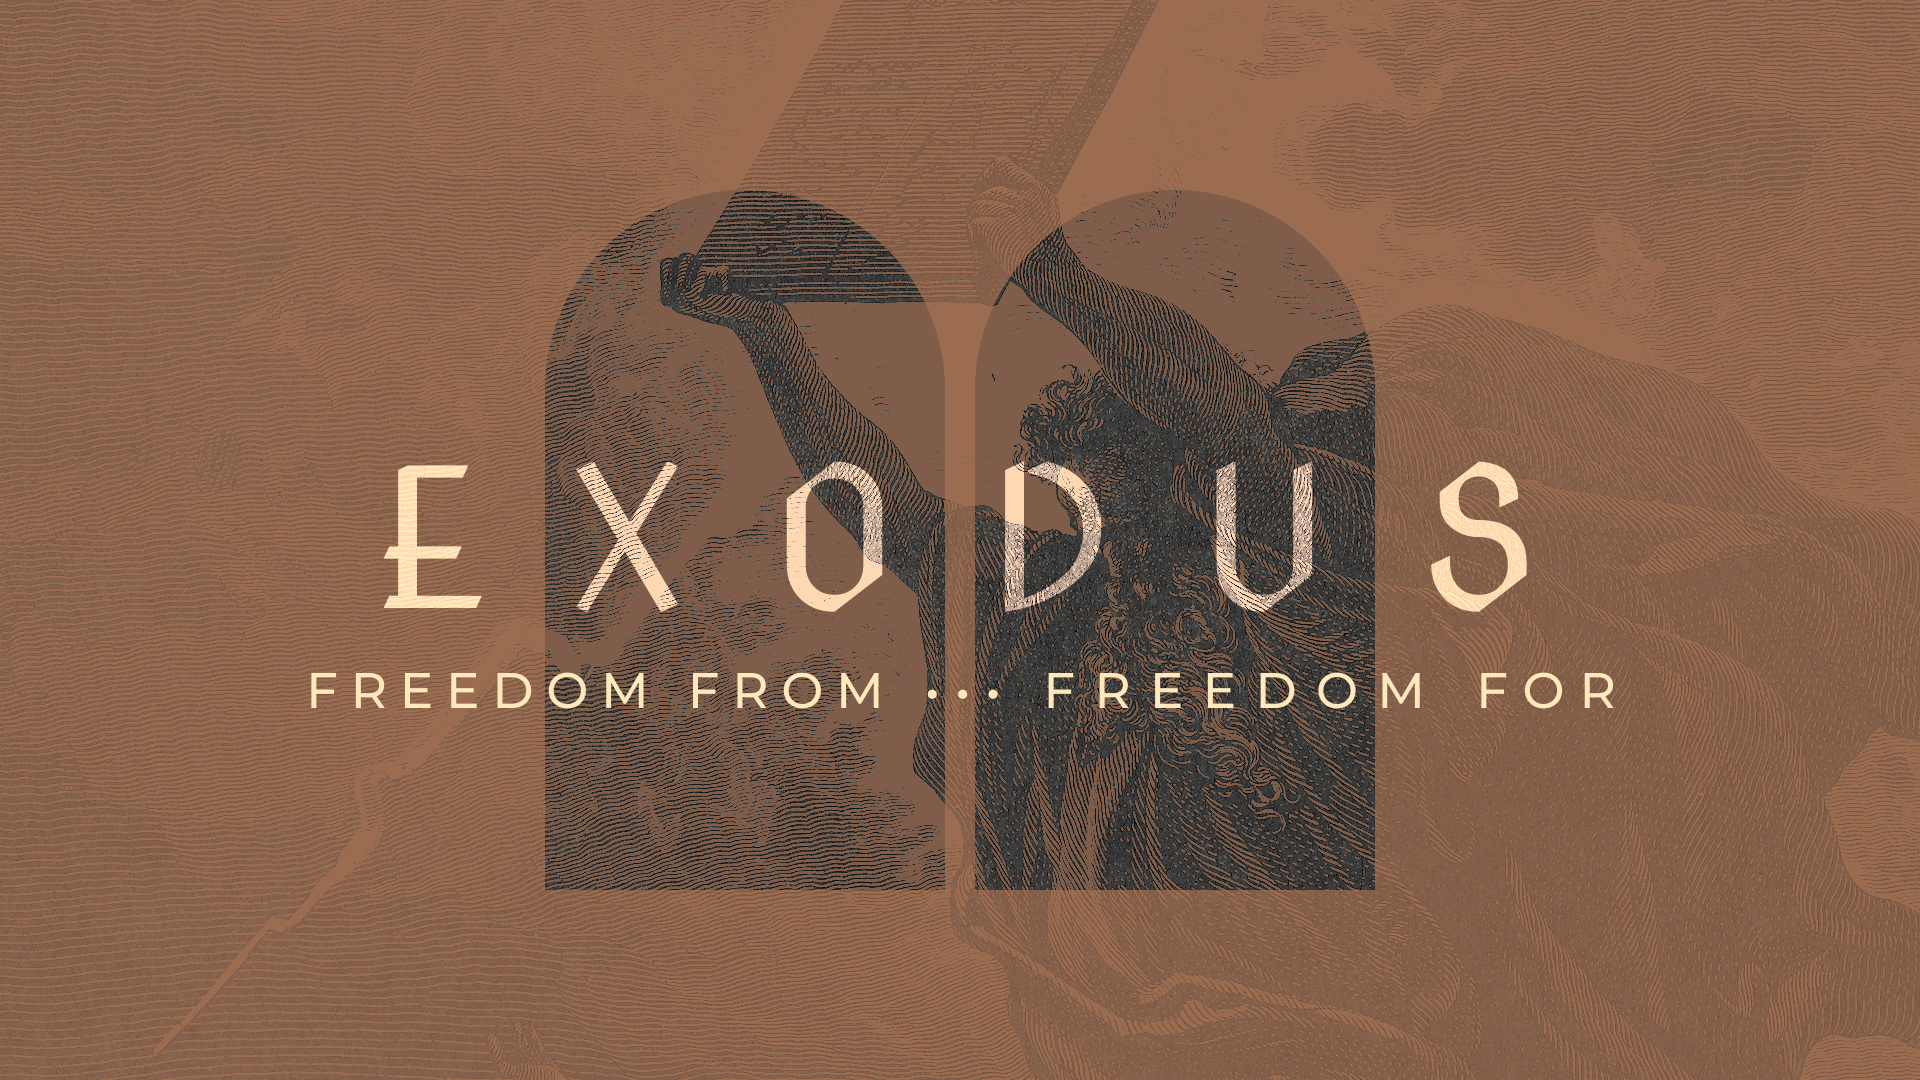 Exodus: Freedom From, Freedom For